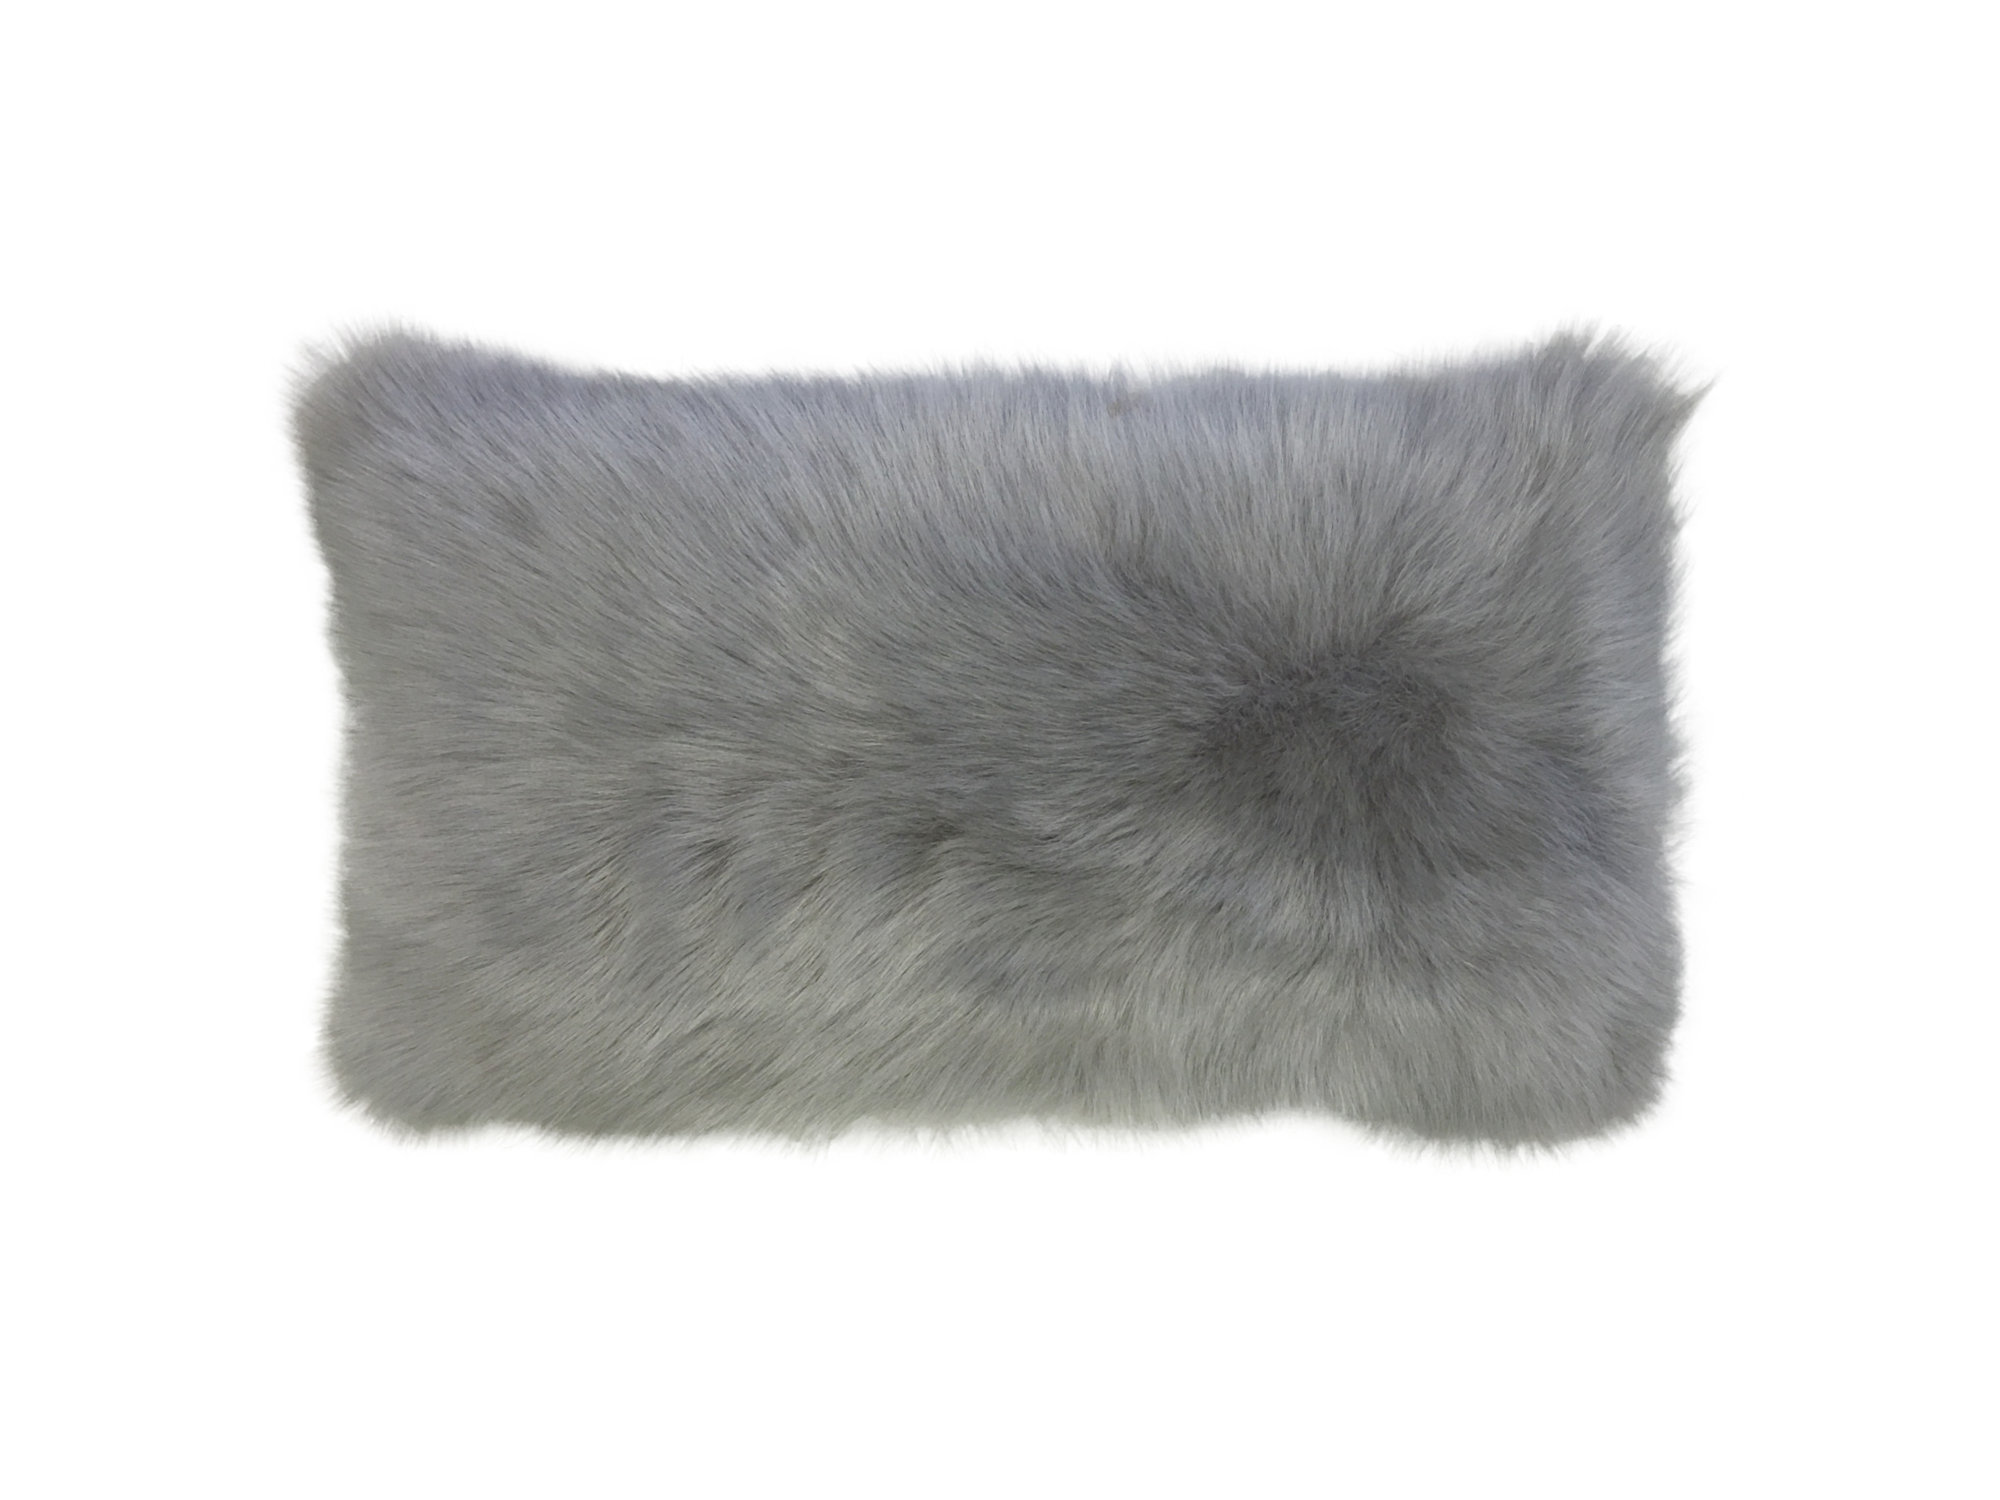 Shearling Pillow-Irish-30x50cm-SPIRIS2643050 - ANVOGG FEEL SHEARLING | ANVOGG